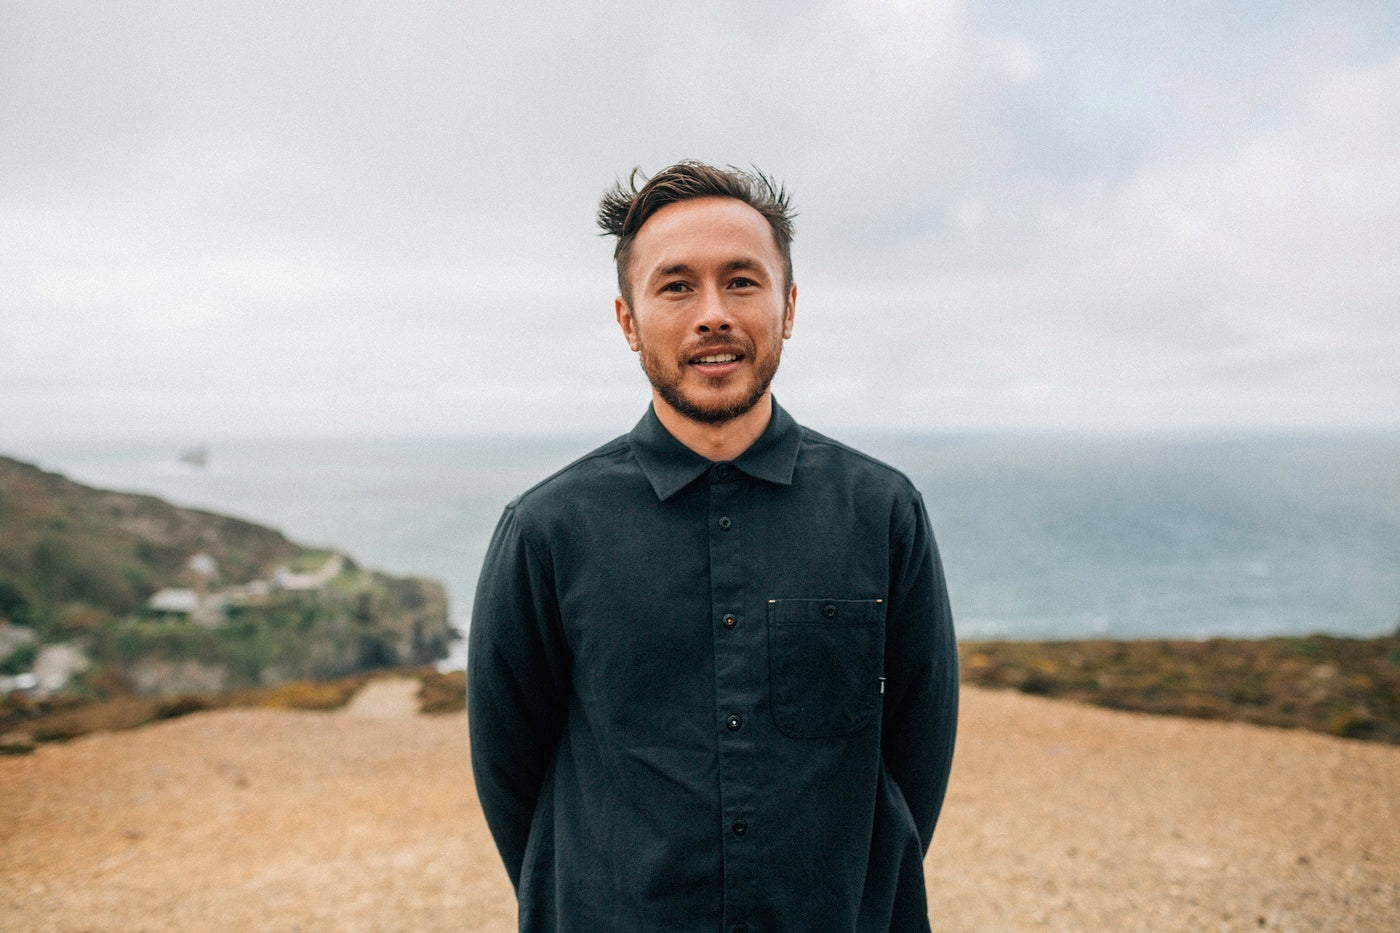 Paul Finnie, the manager of Finisterre Hawksfield